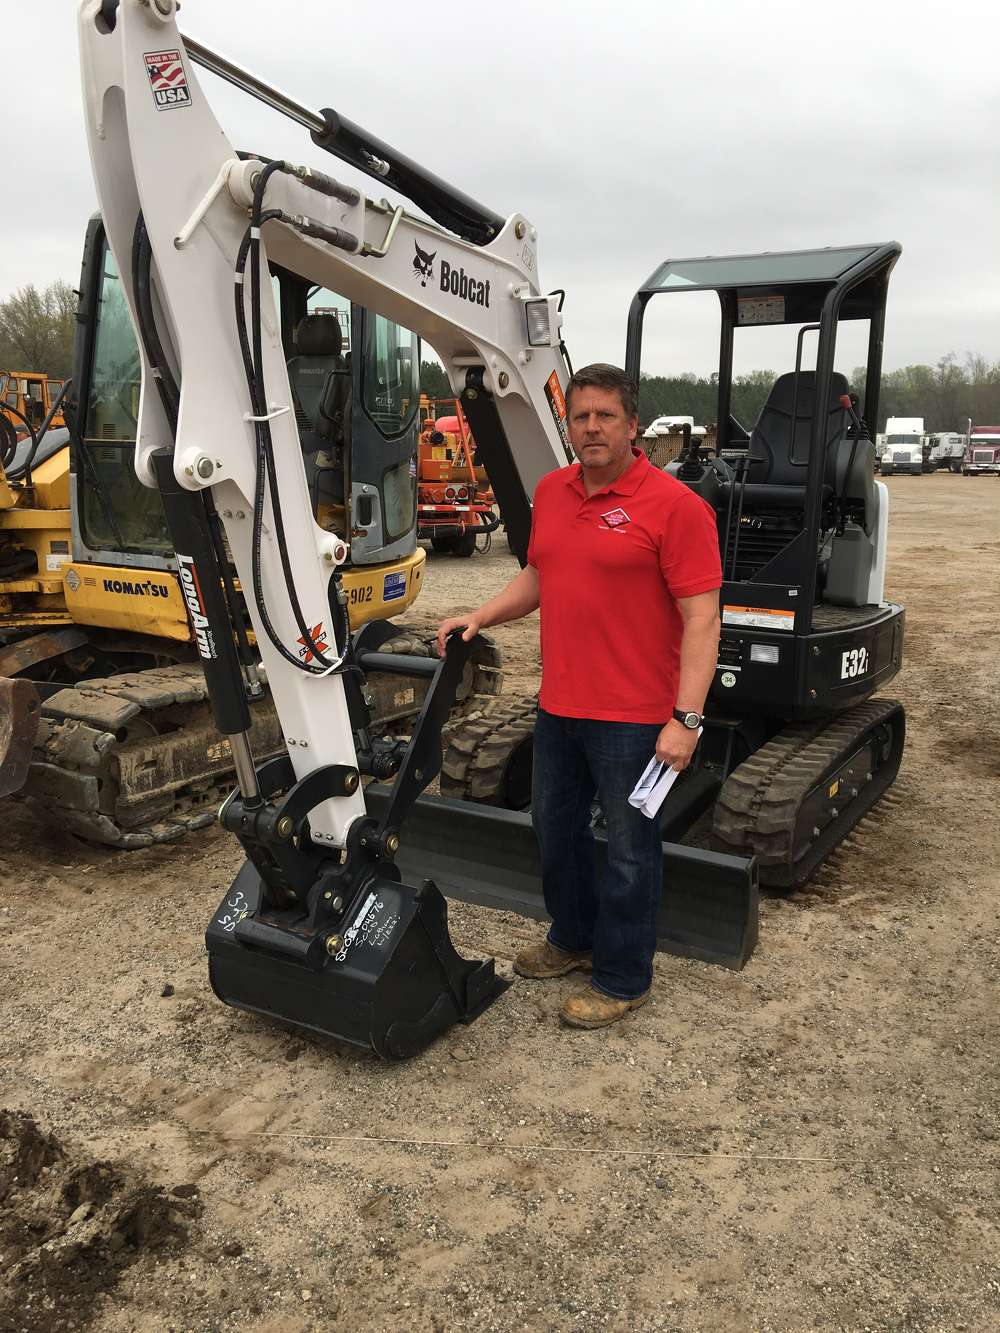 This new Bobcat E32i excavator caught the eye of Harlan Martin of Martin Construction & Grading in Eastanollee, Ga